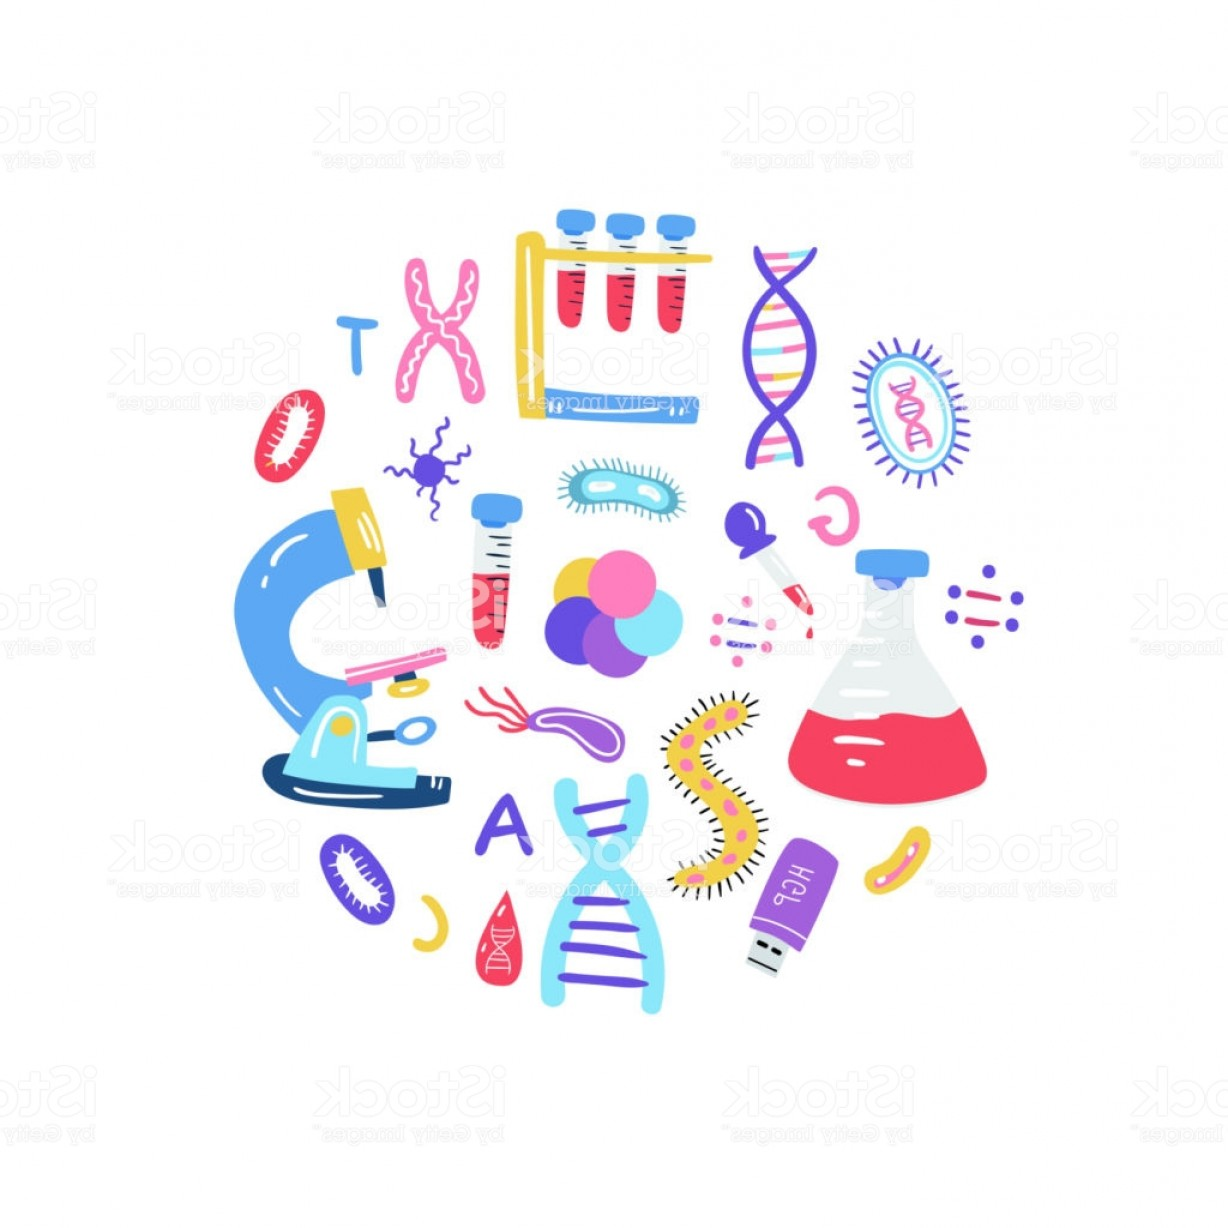 TSS Vector: Hand Drawn Genome Sequencing Concept Human Dna Research Technology Symbols Gm